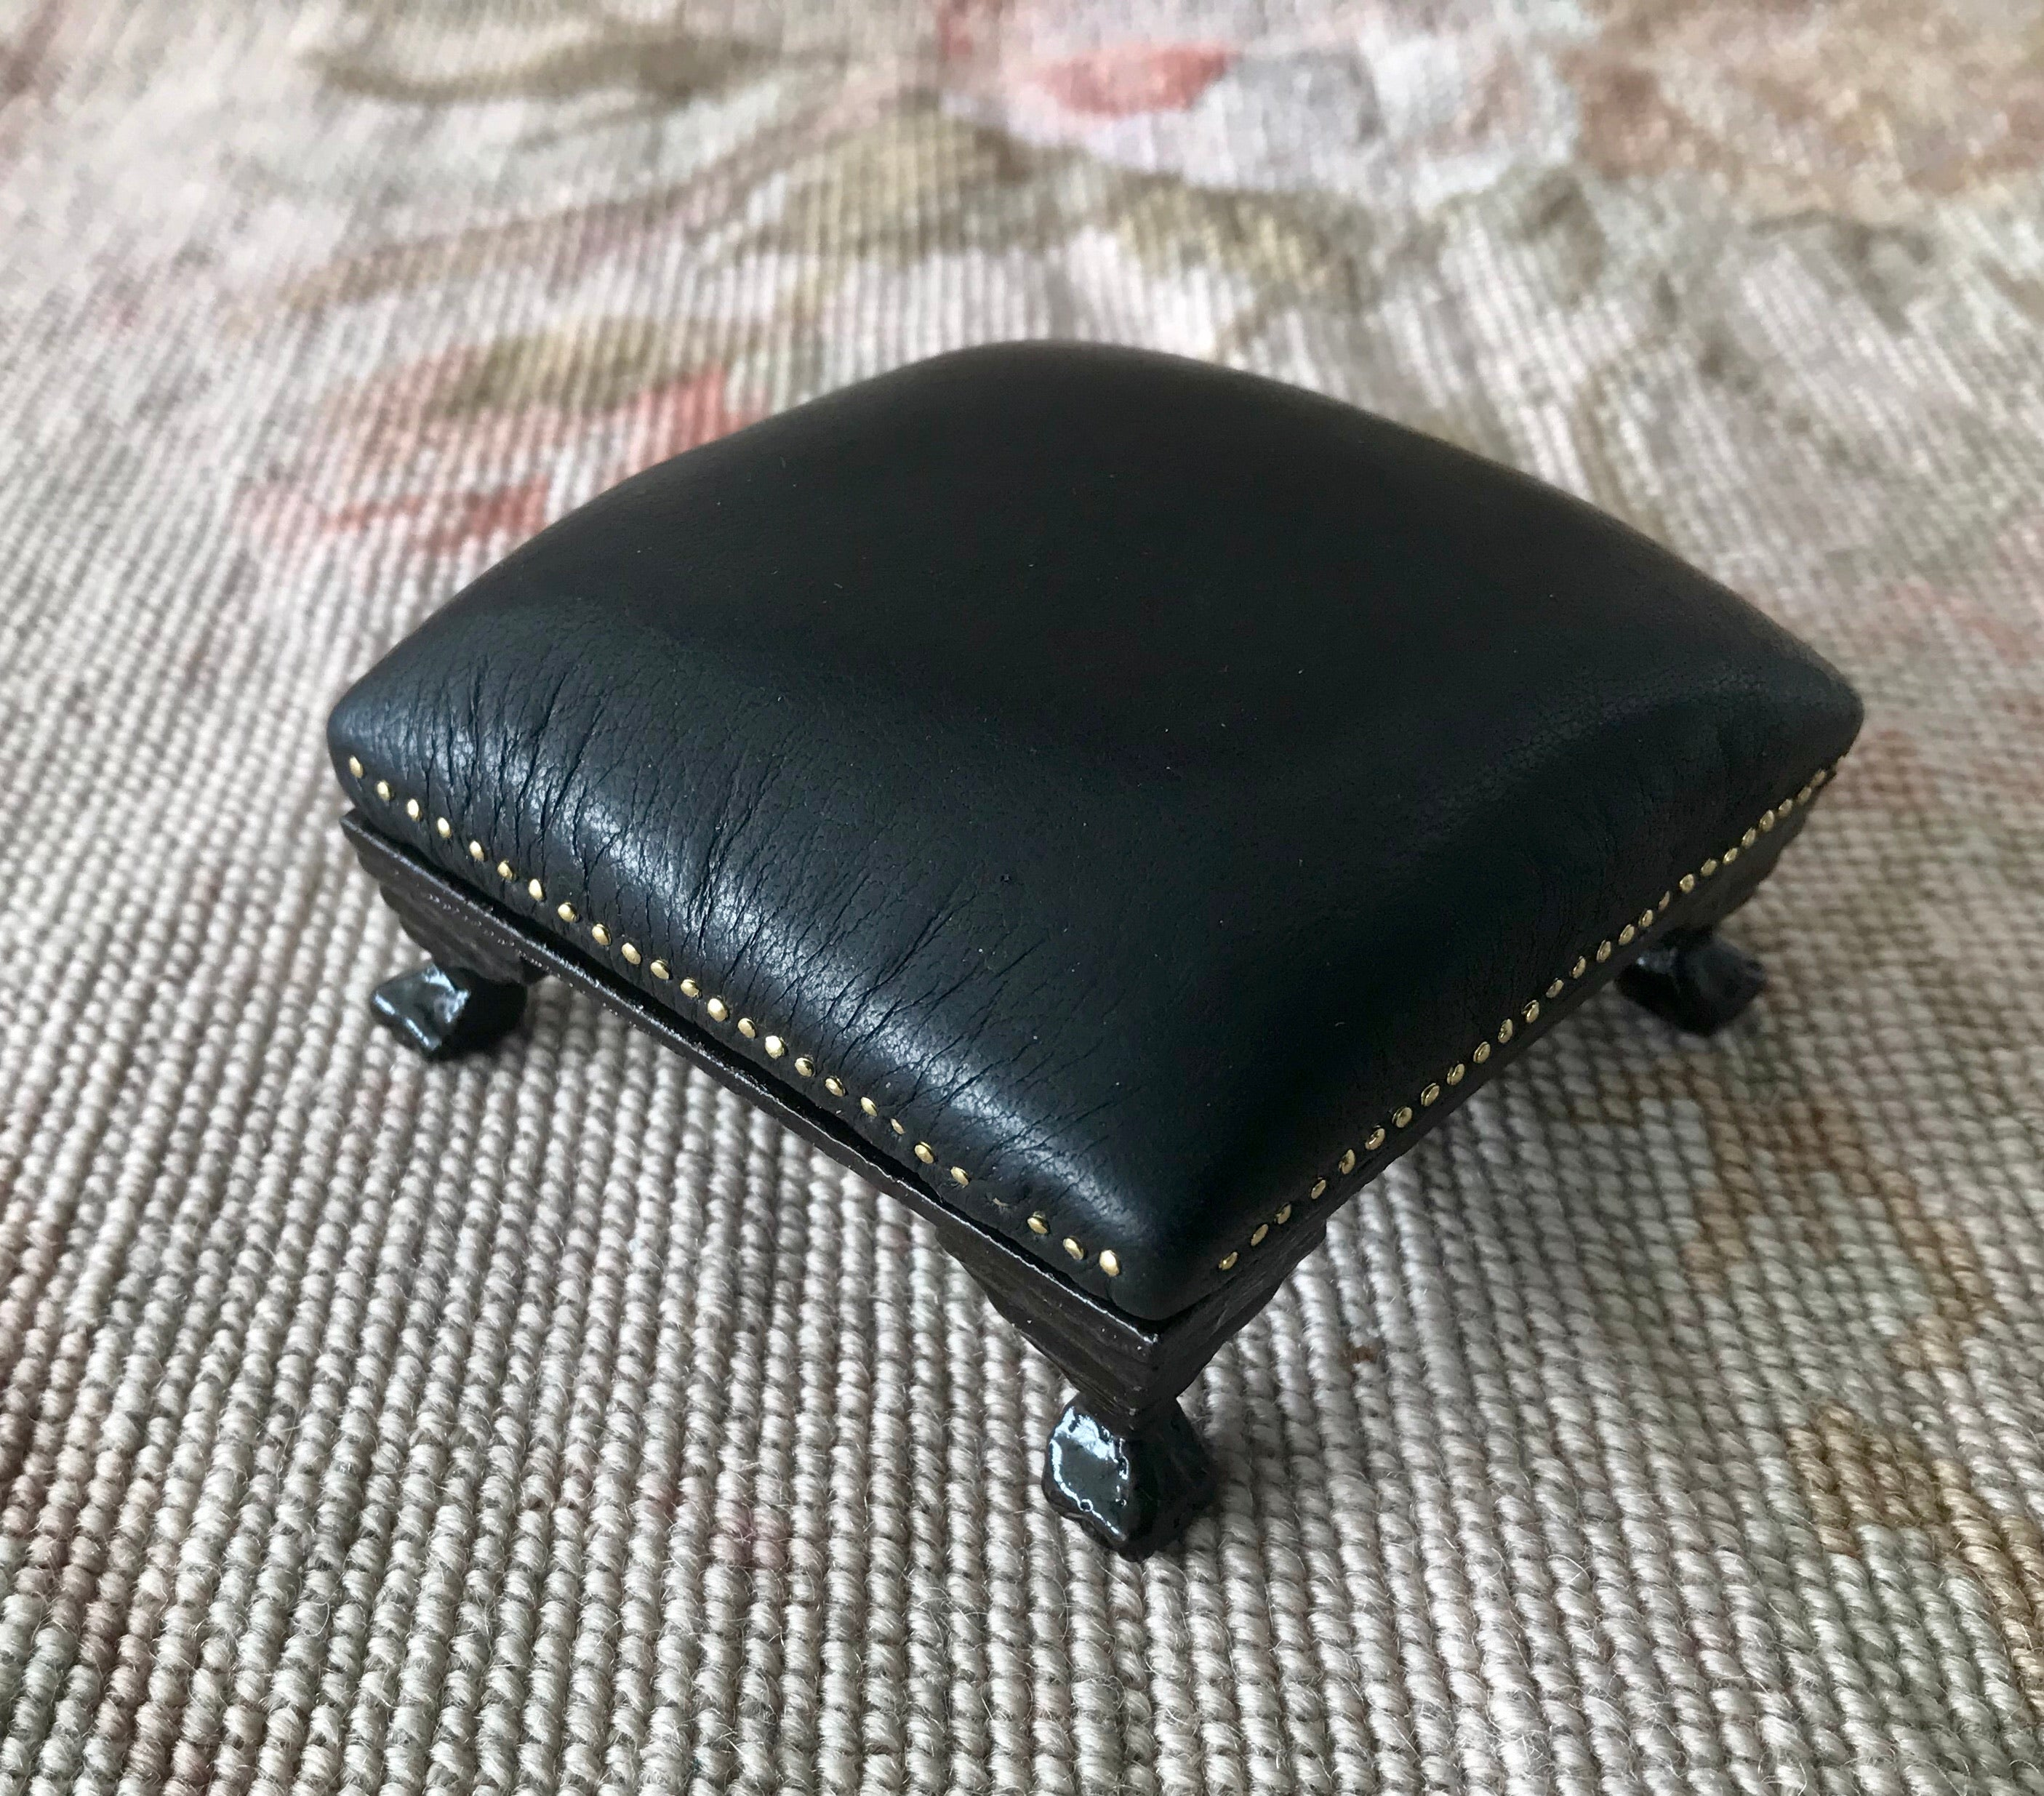 Stool Ottoman Seat Black Leather 1:12 Scale Dollhouse Miniature